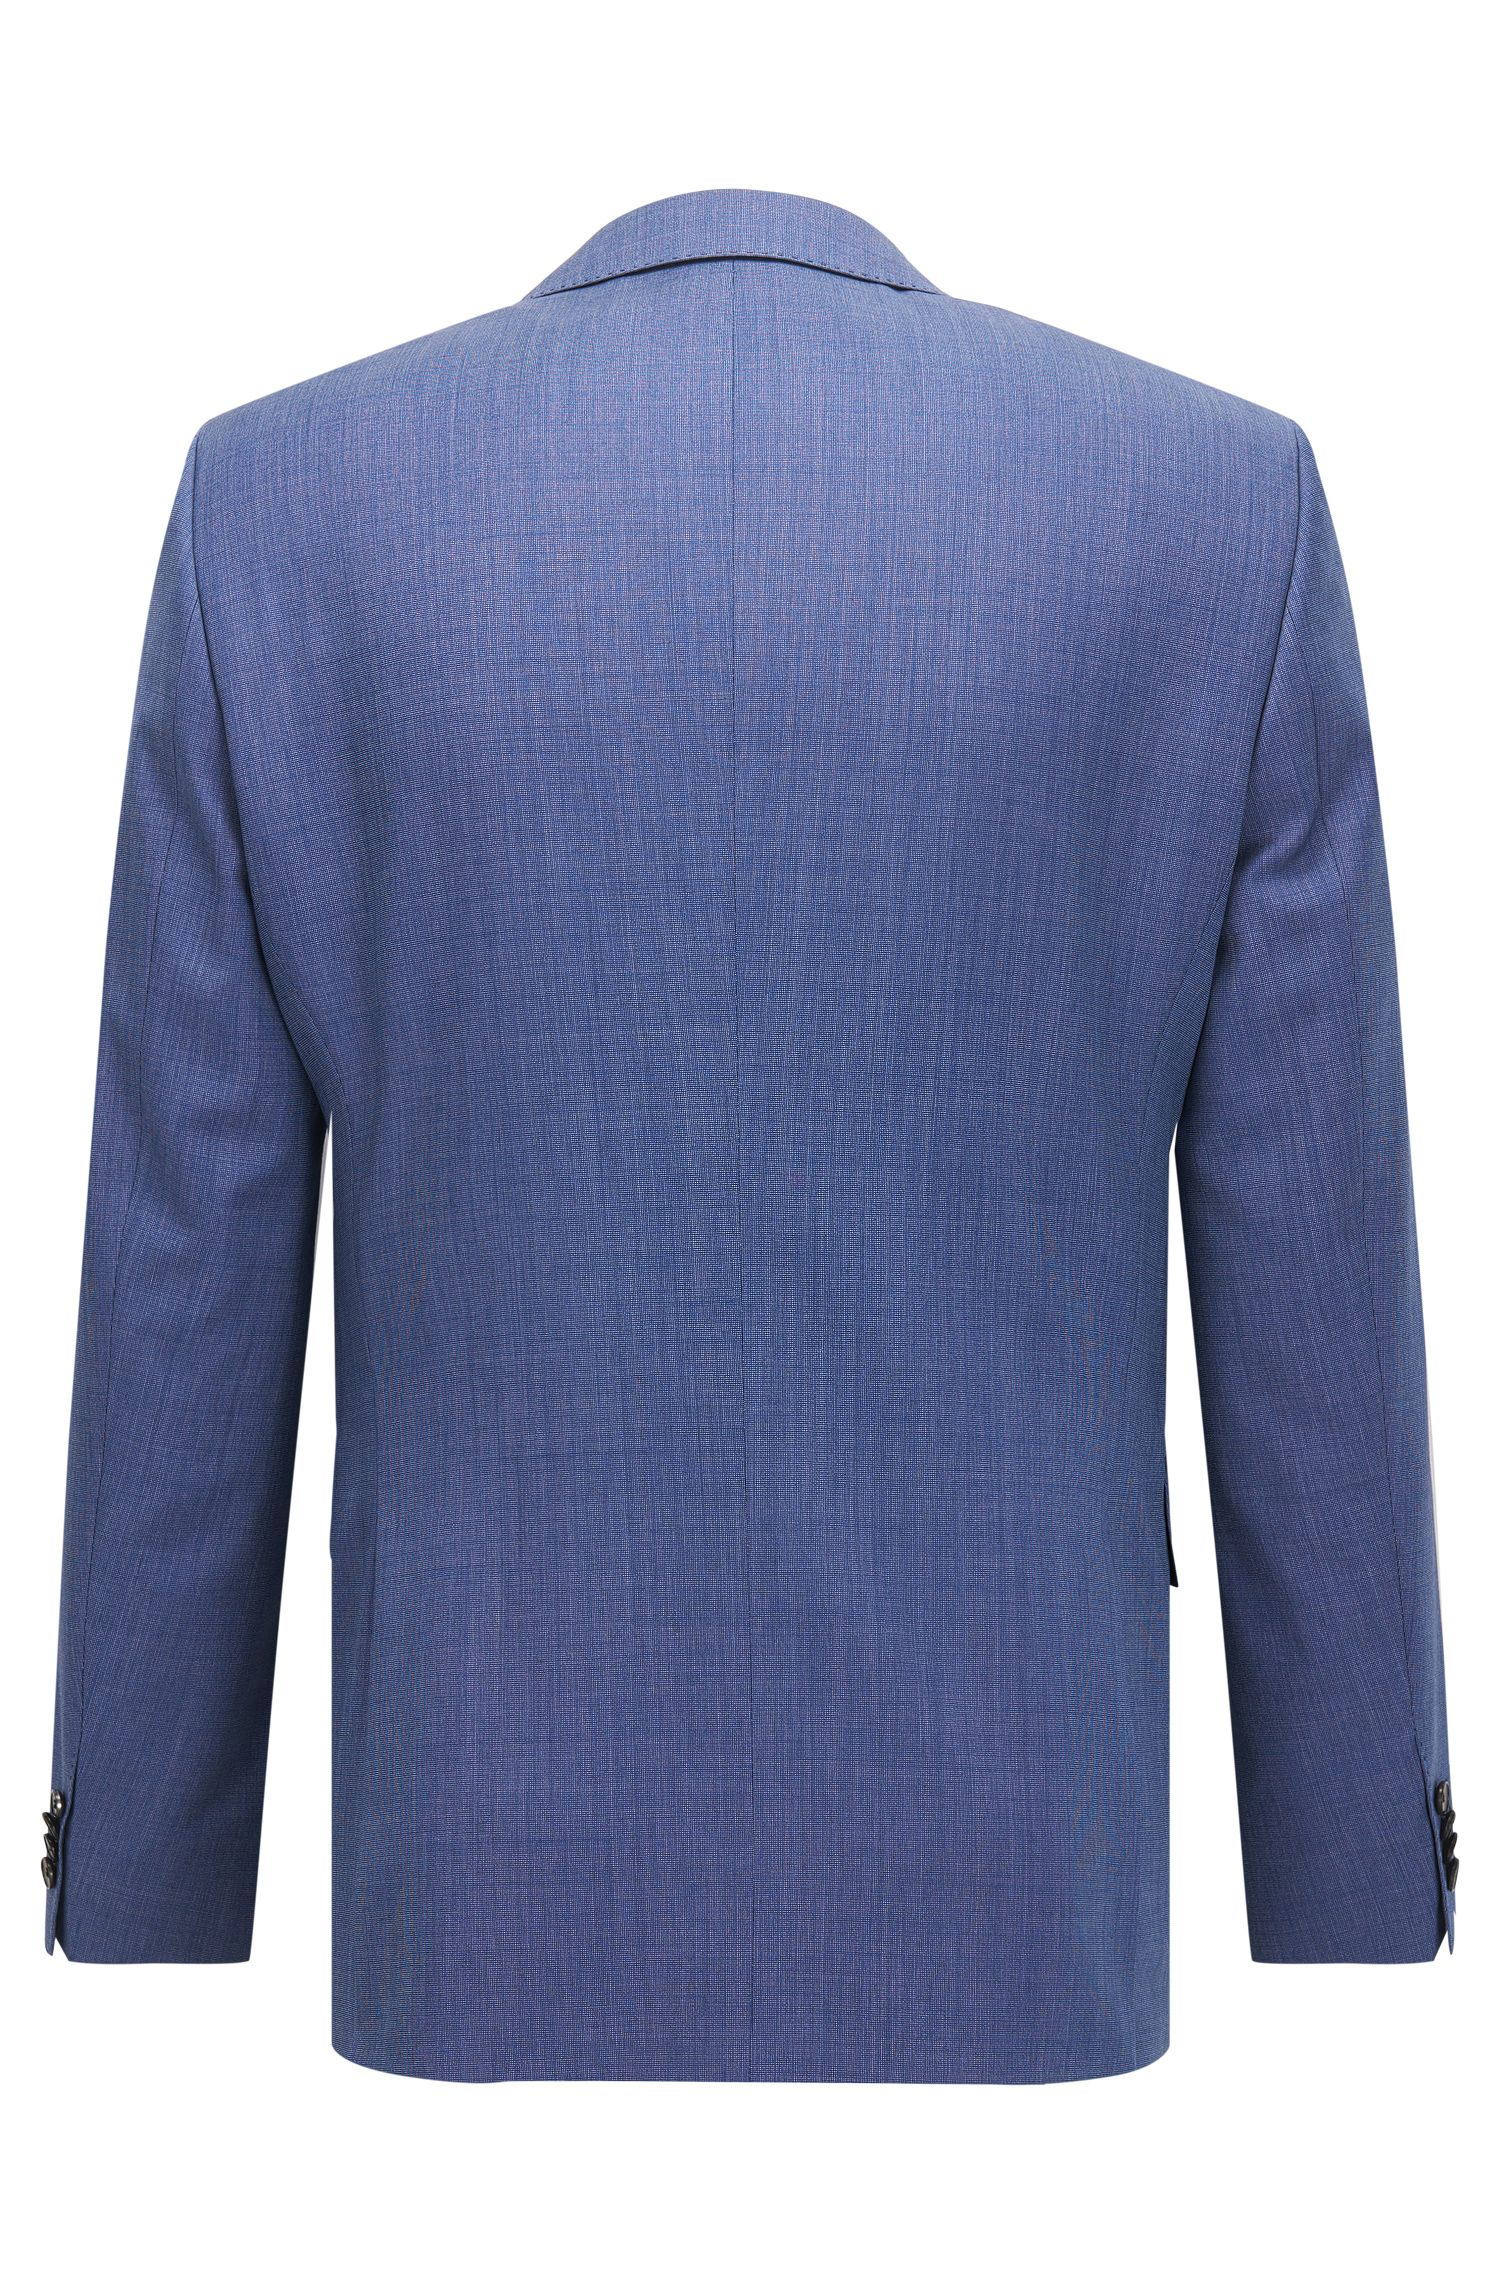 Birdseye Virgin Wool Suit, Slim Fit | Huge/Genius